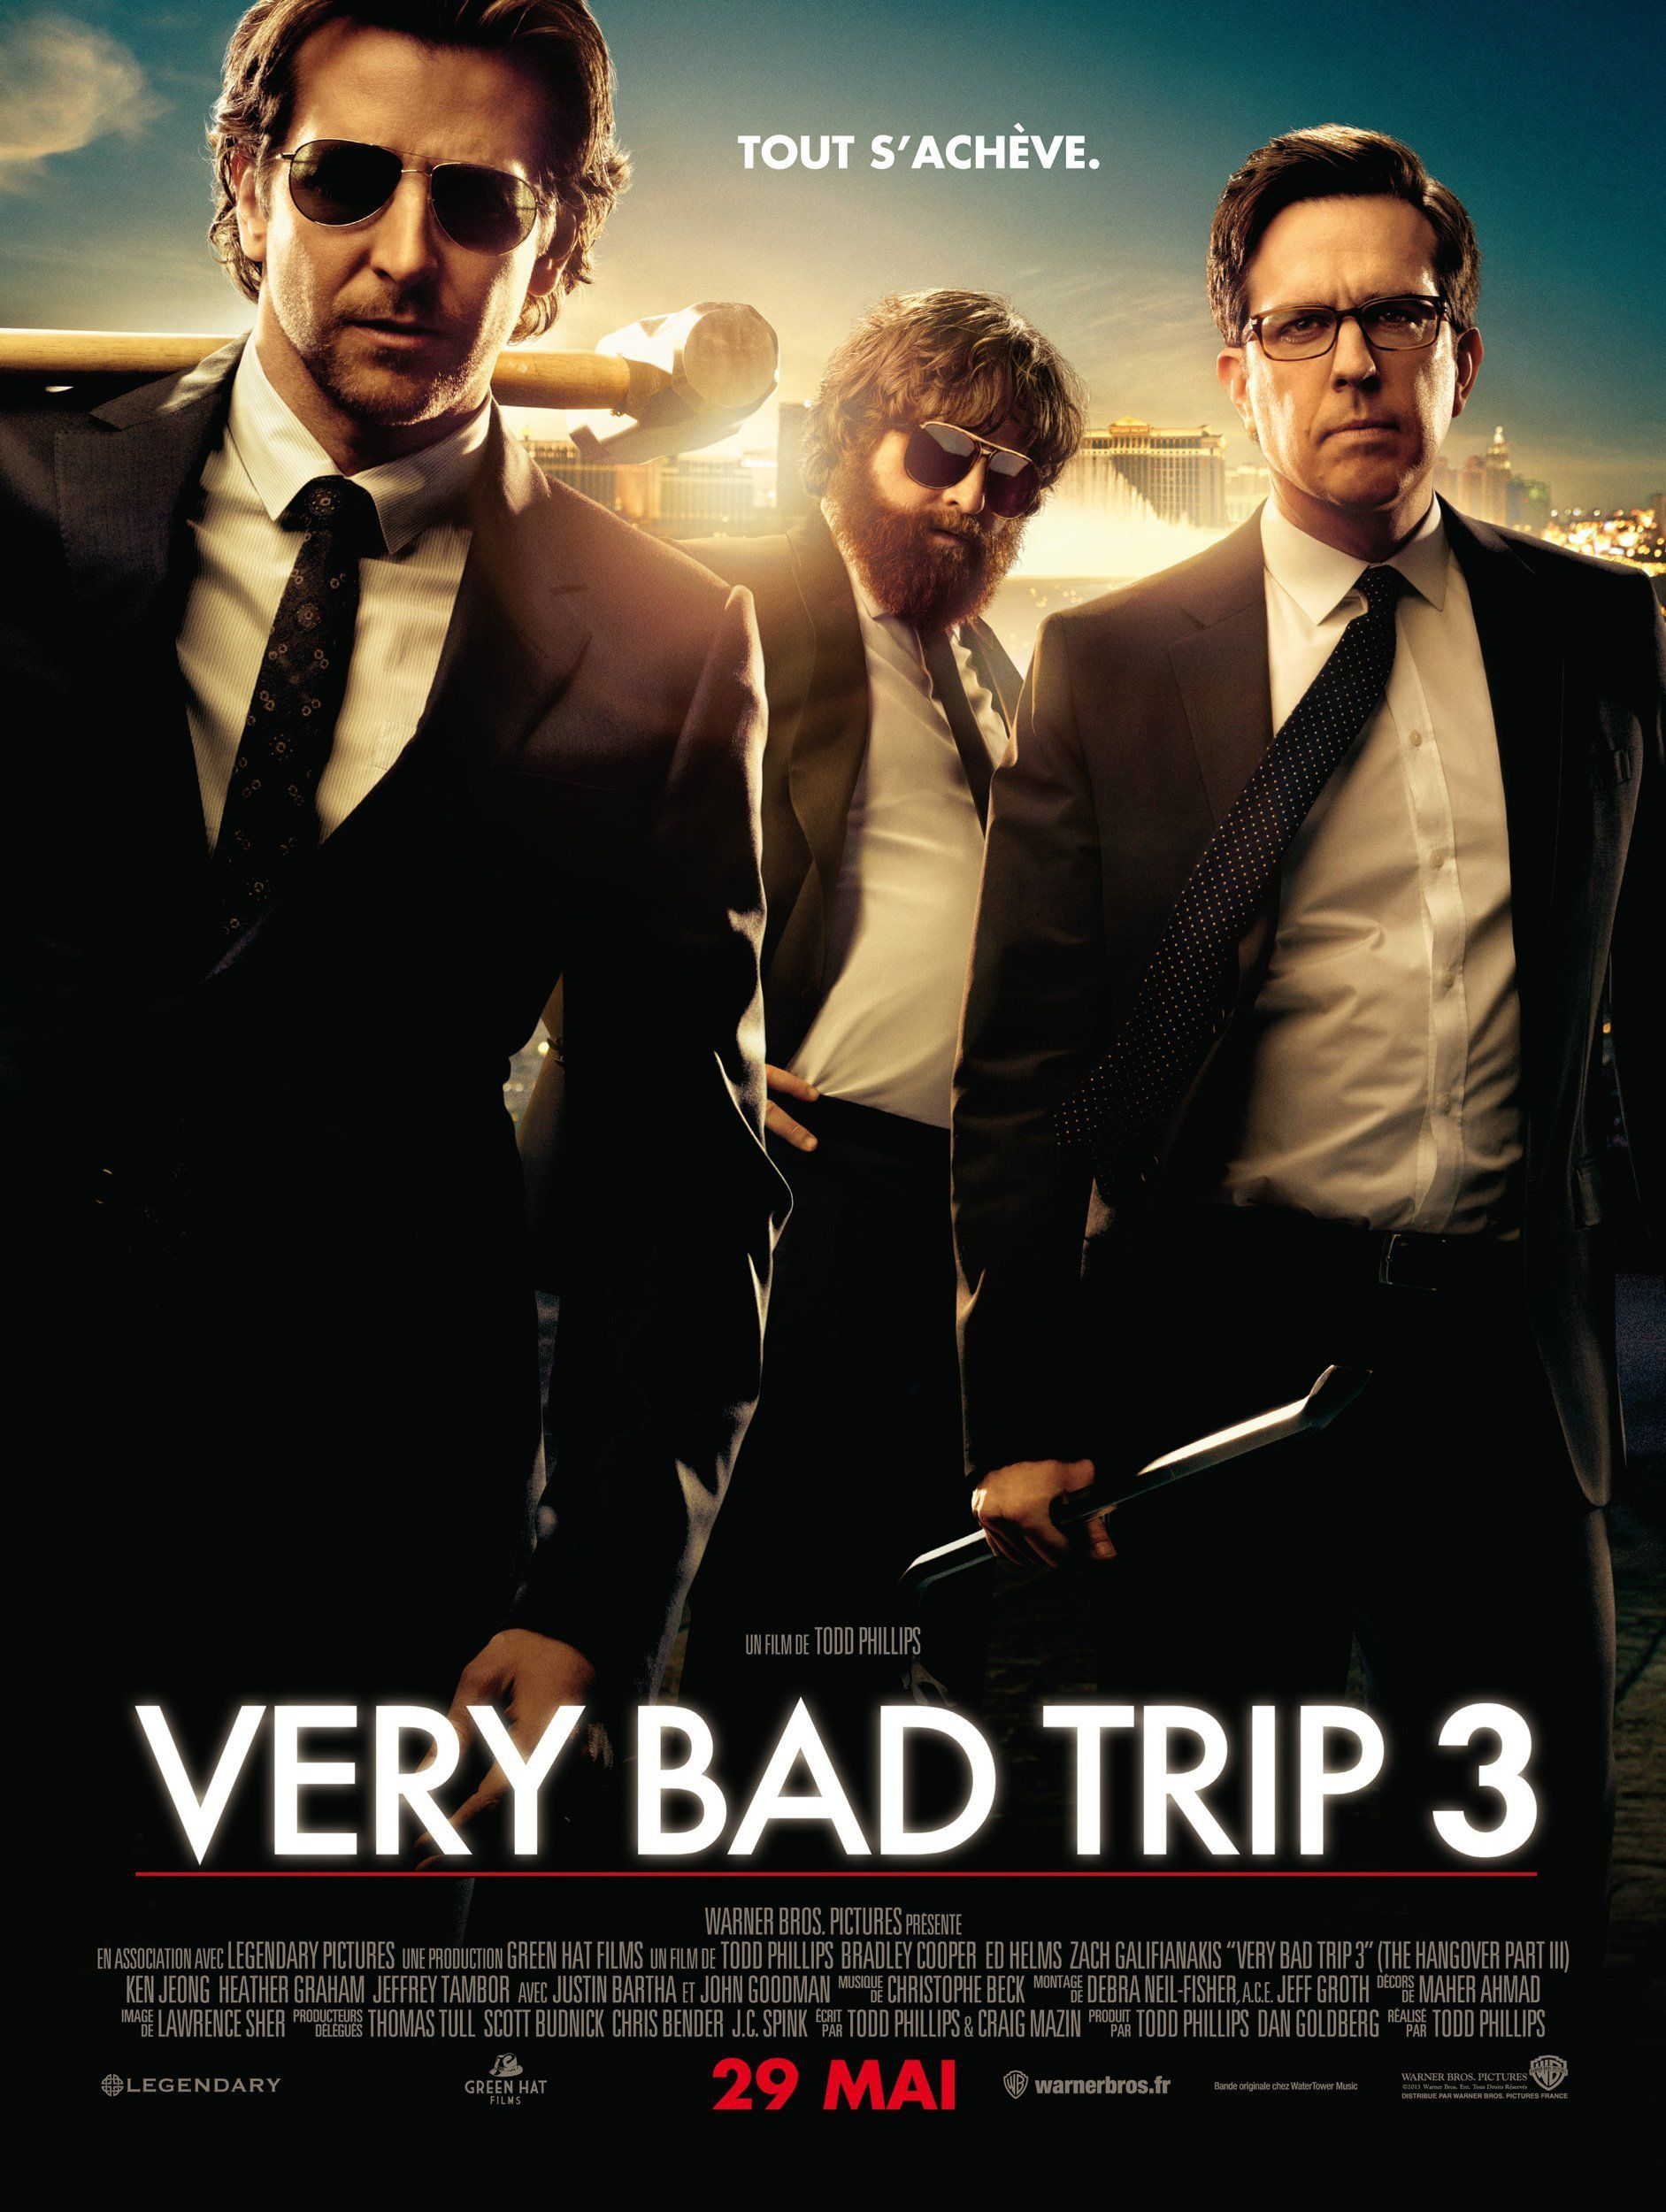 Very Bad Trip 3 - Film (2013)